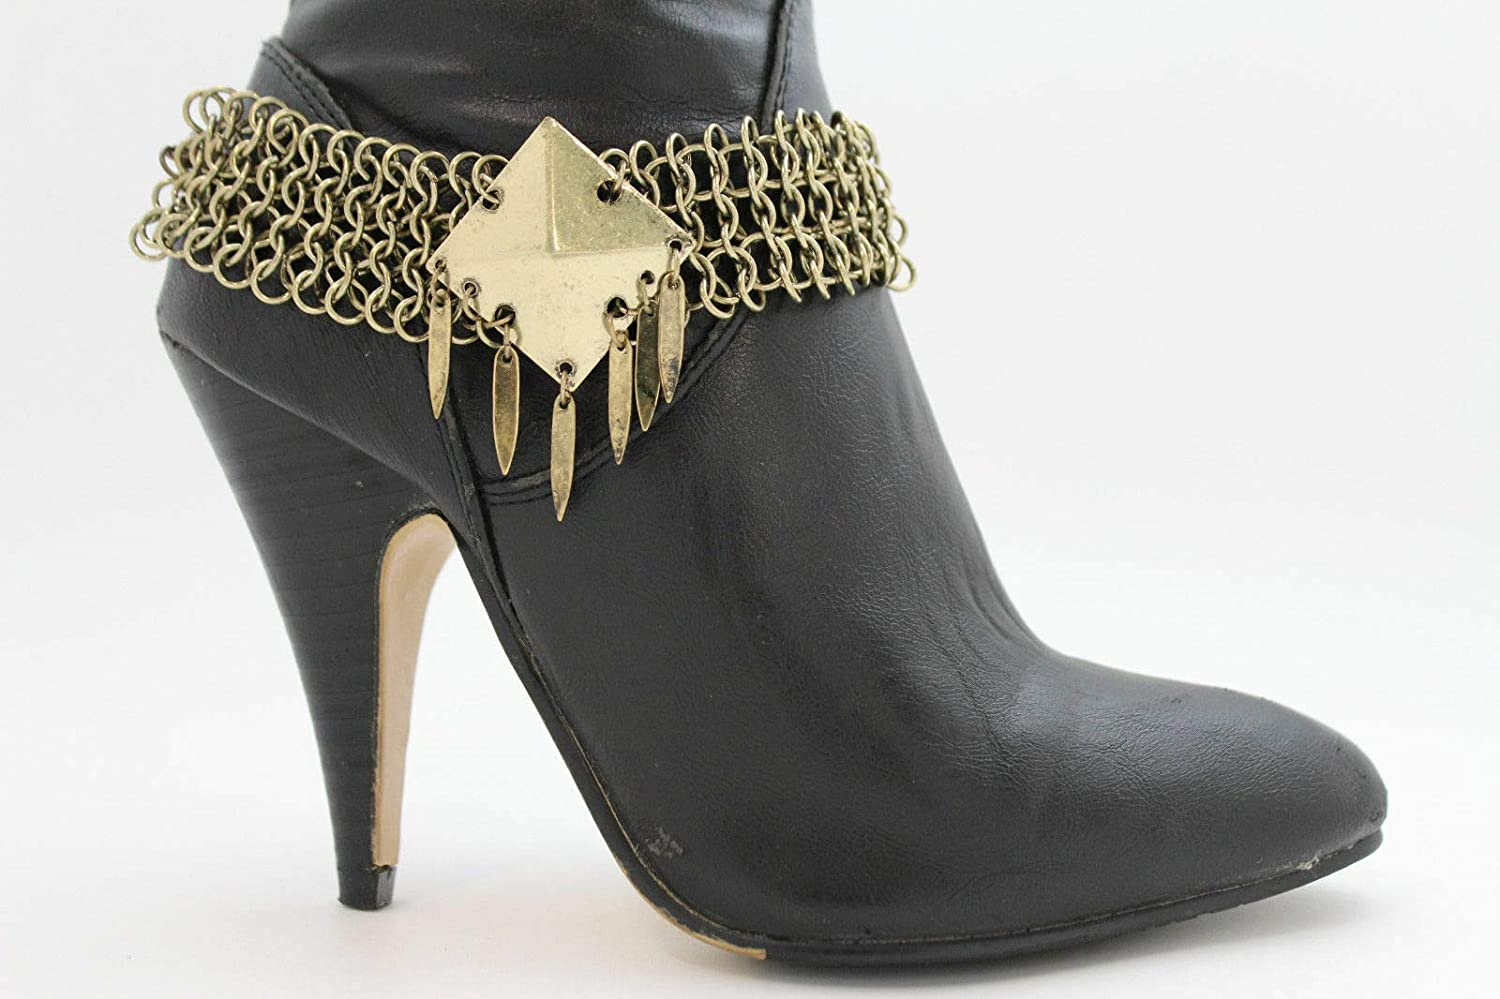 Women Jewelry Boot Bracelet Antique Gold Metal Chains Anklet Shoe Charm DS-4315